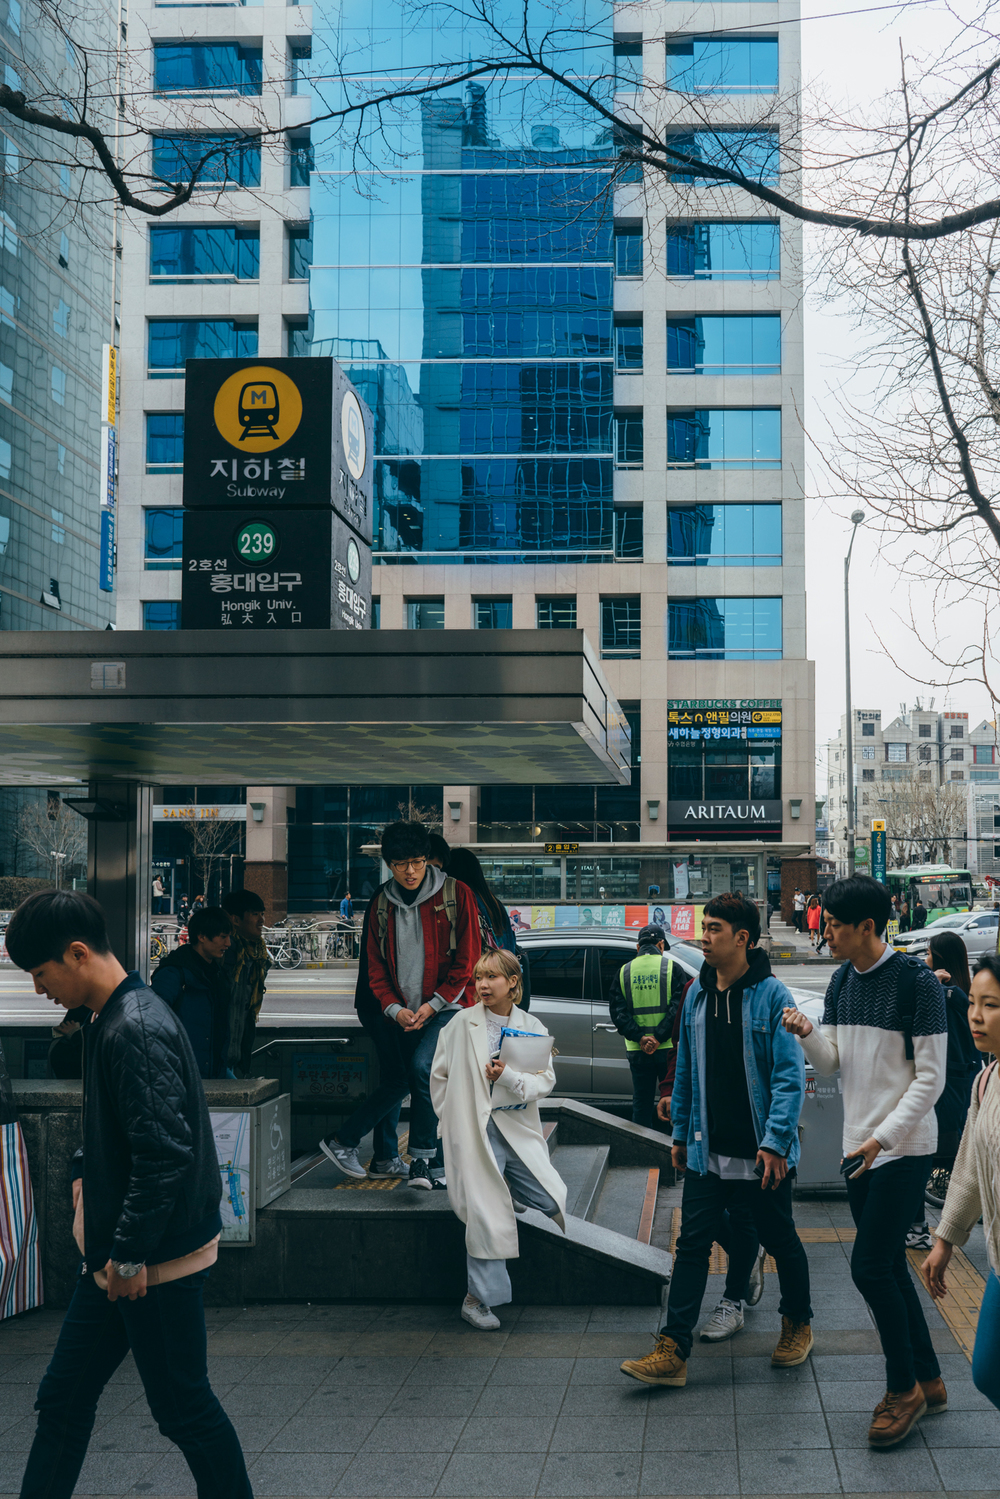 Greysuitcase in Seoul: Hongik University Station (홍대입구) Exit 8, Hongdae, South Korea.